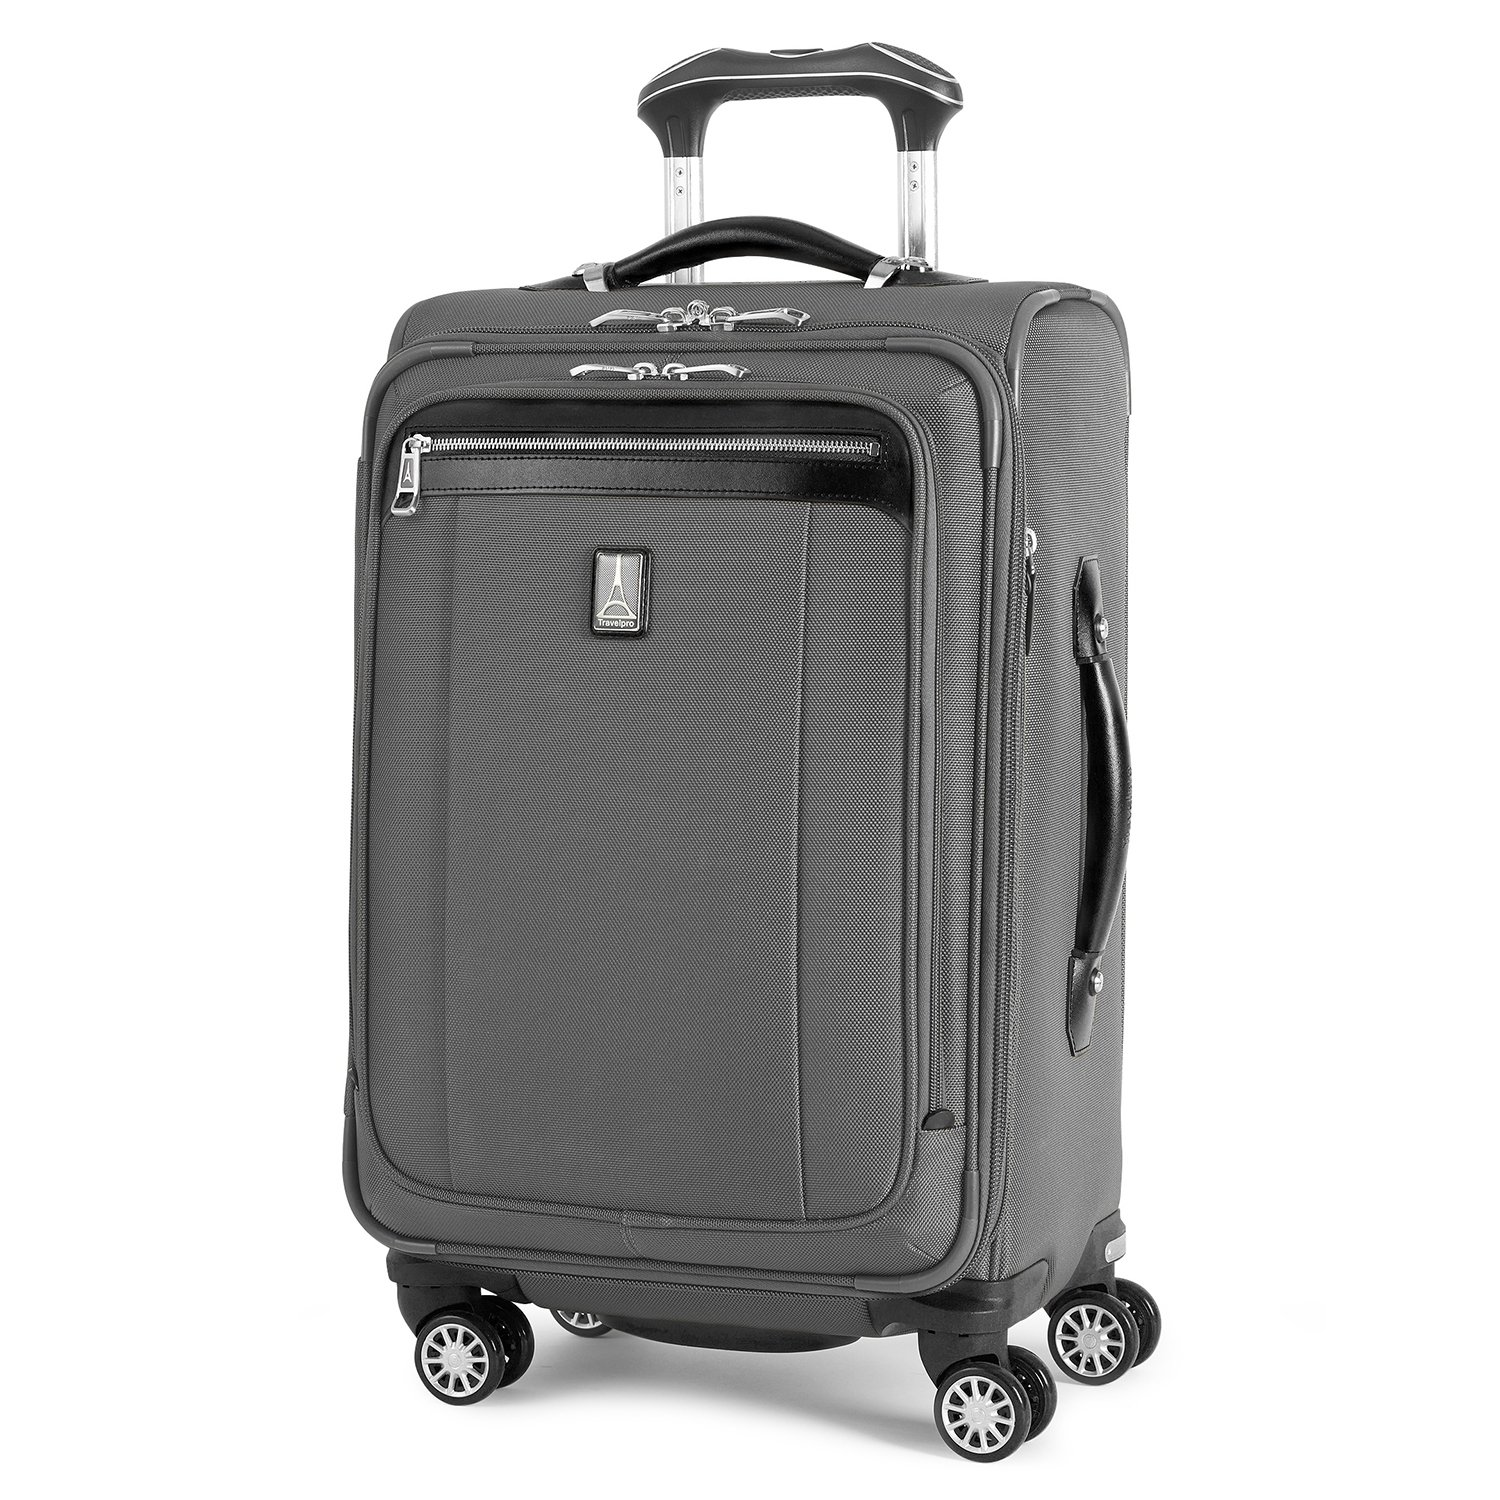 Travelpro Platinum Magna 2 Carry-On Expandable Spinner Suiter Suitcase, 21-in., Charcoal Grey